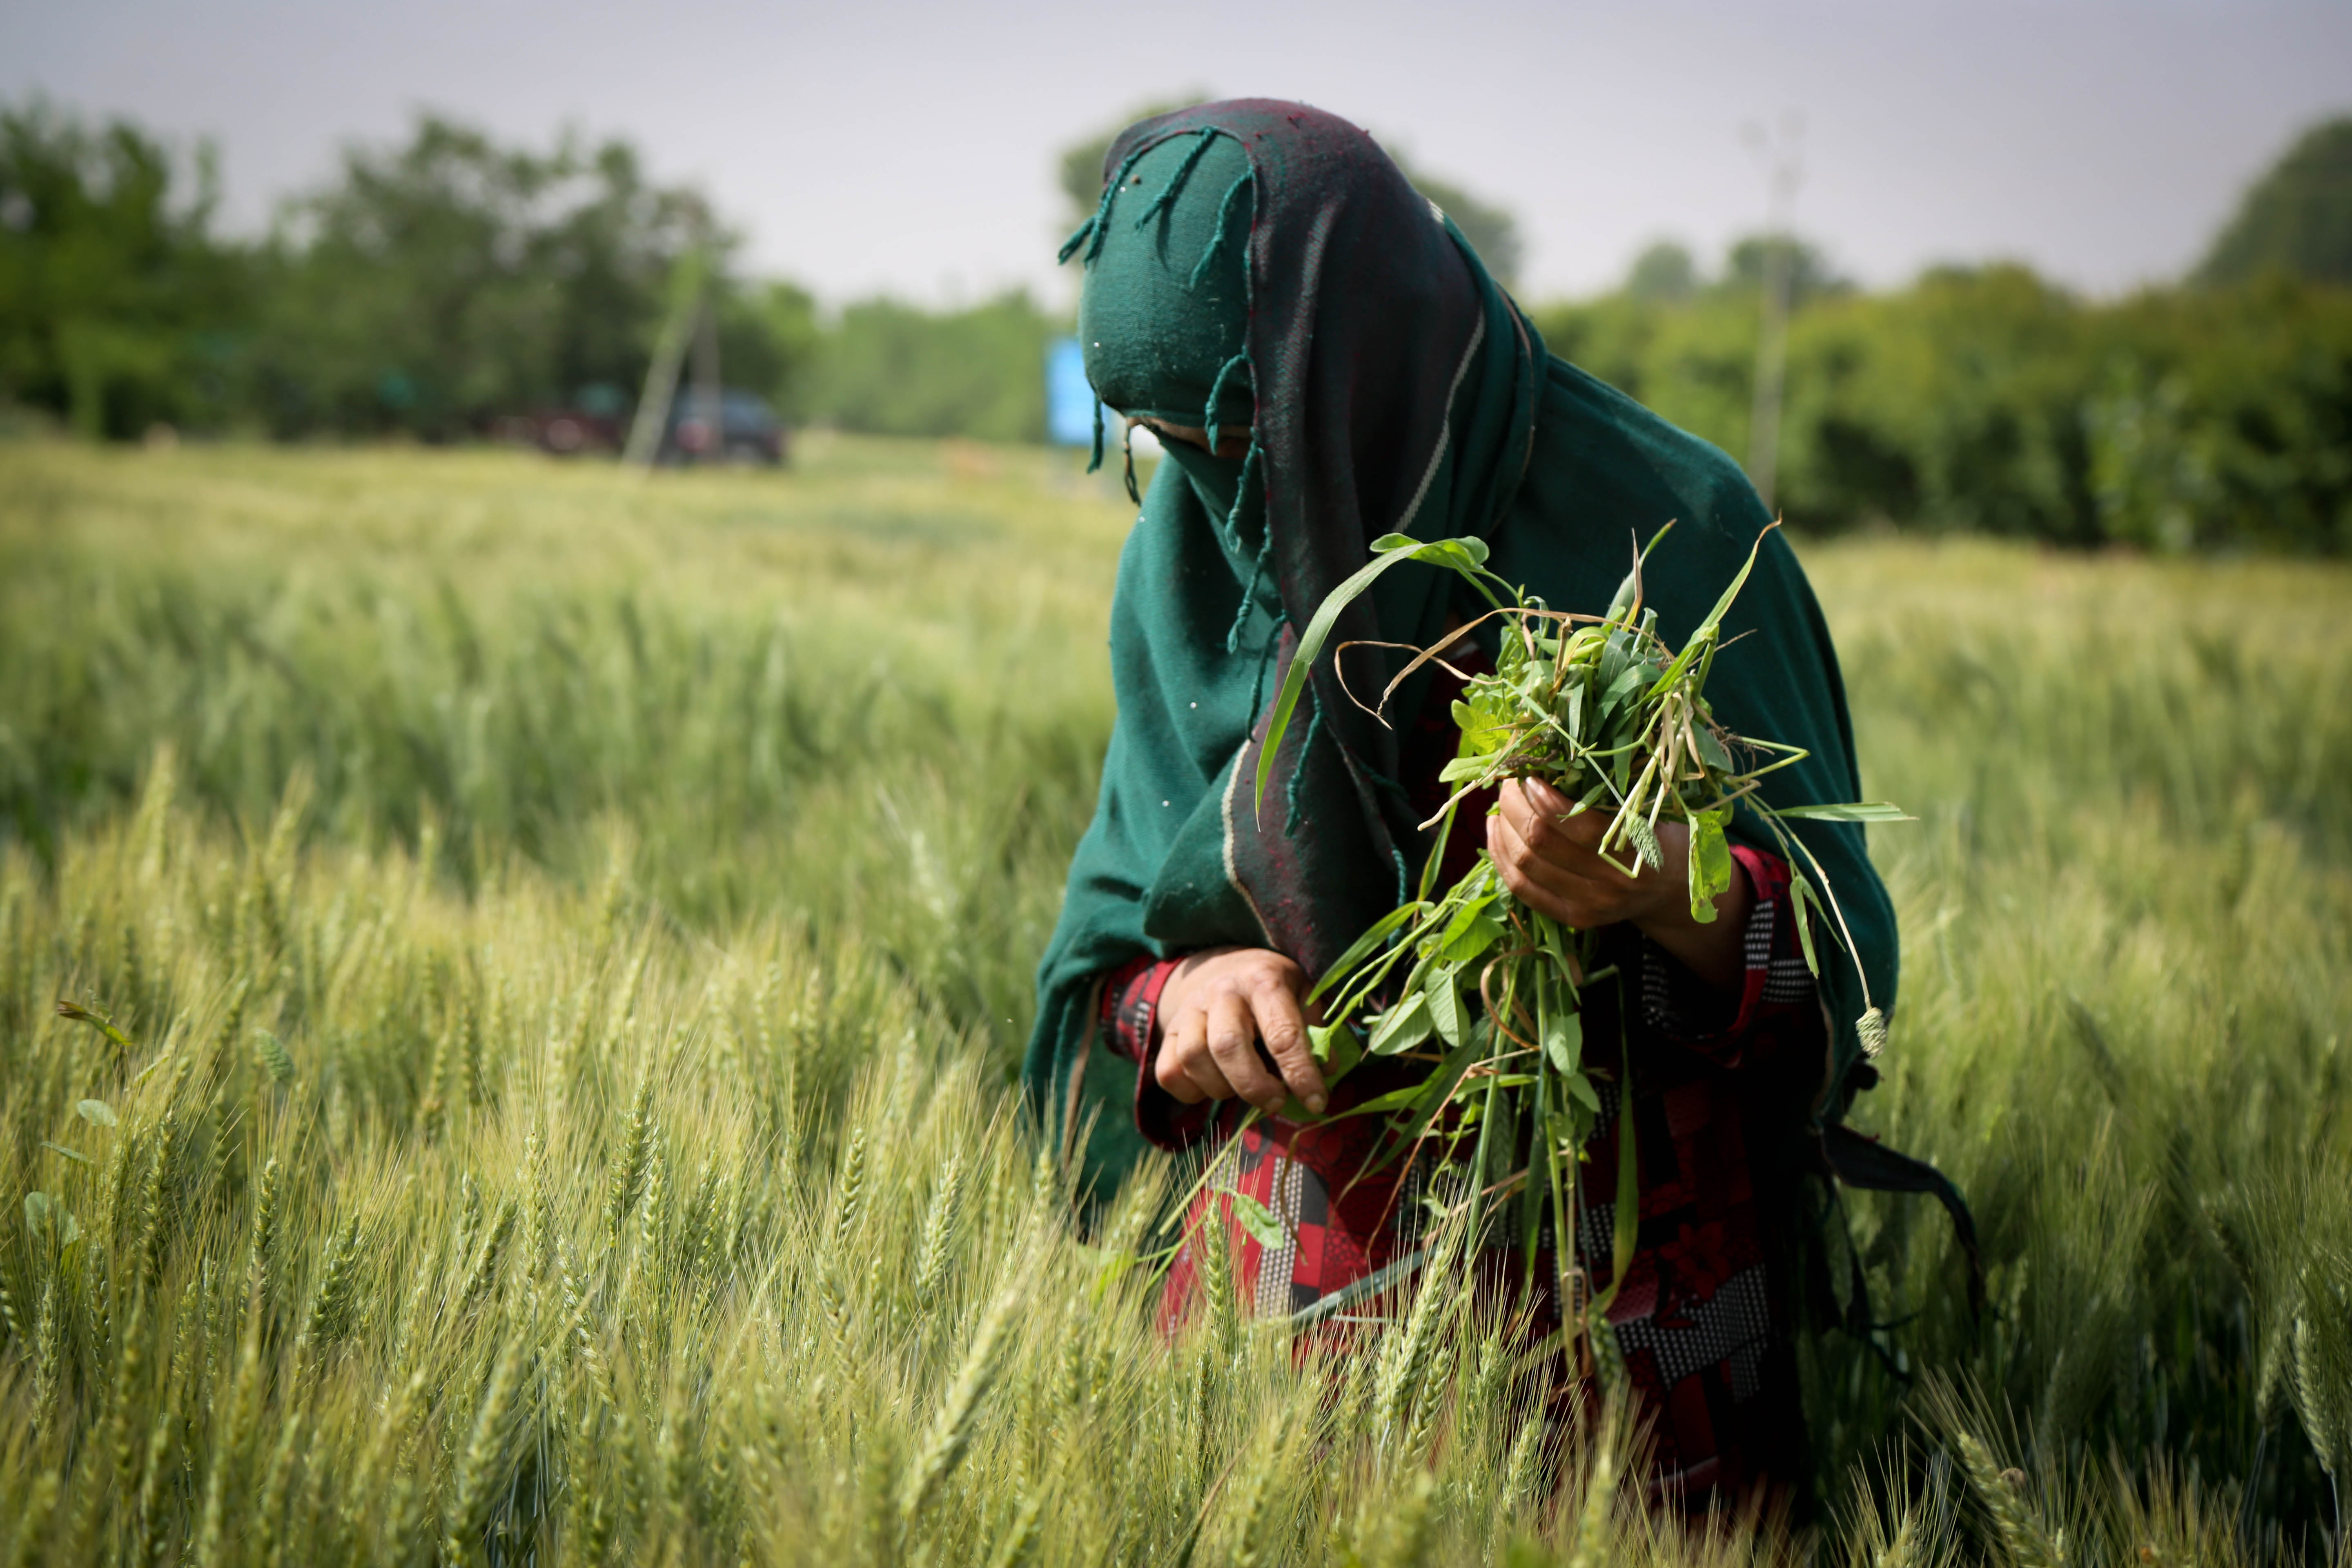 Feroza, 35, working on a farm in Afghanistan